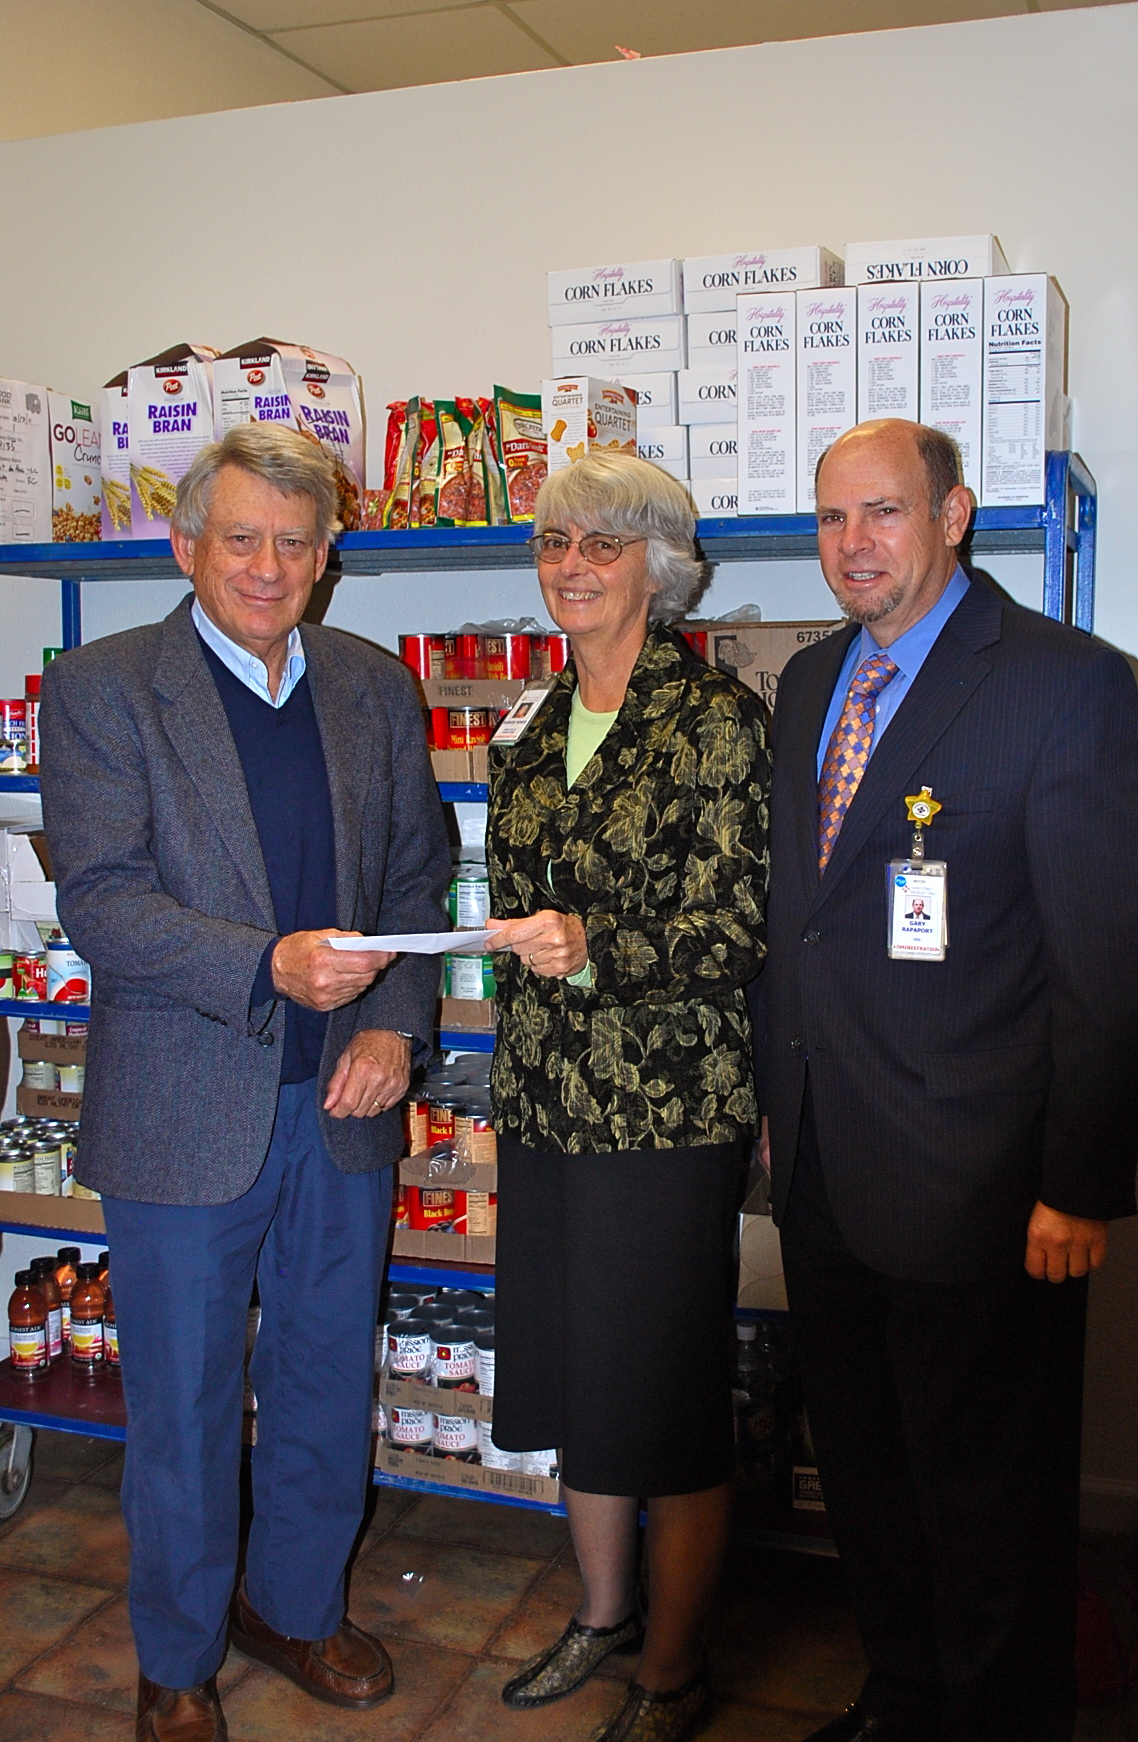 sutter delta medical helps families this holiday season by